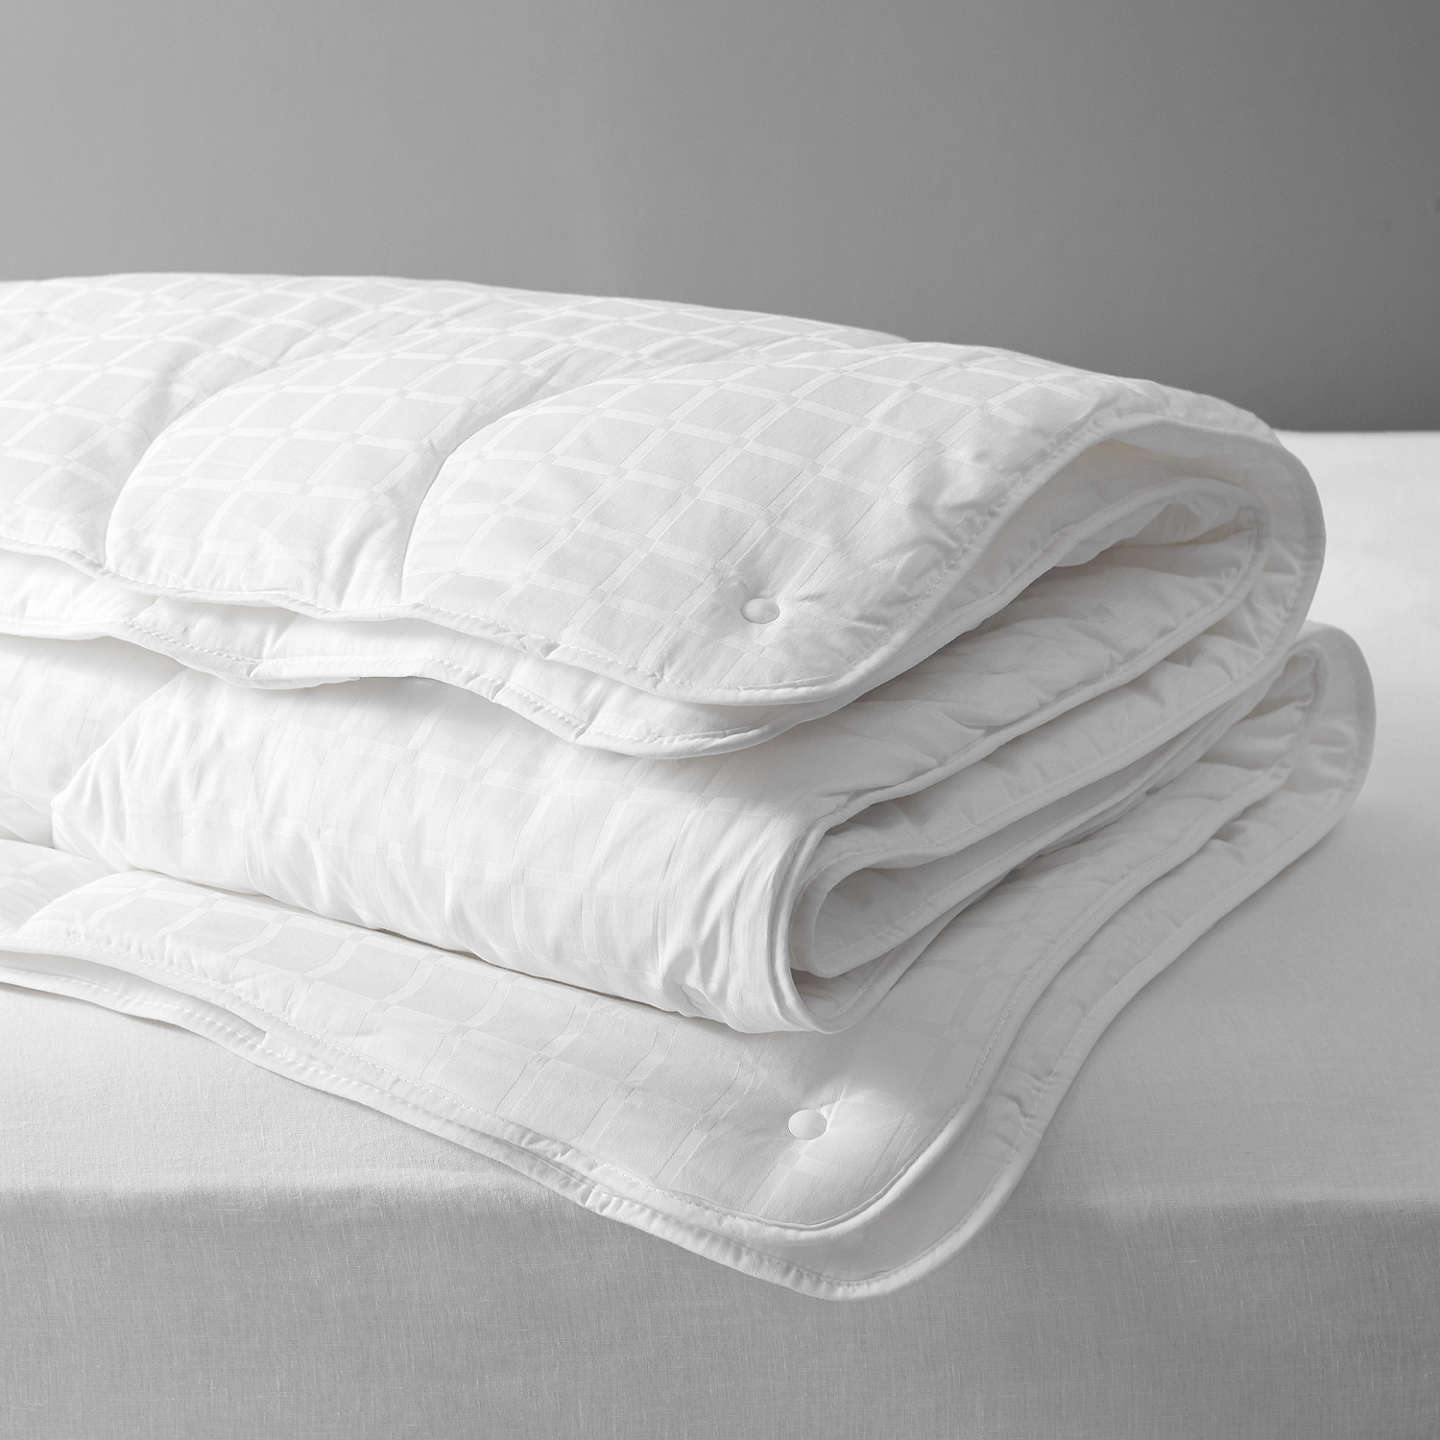 John Lewis Specialist Synthetic Active Anti Allergy Duvet 13 5 Tog 4 9